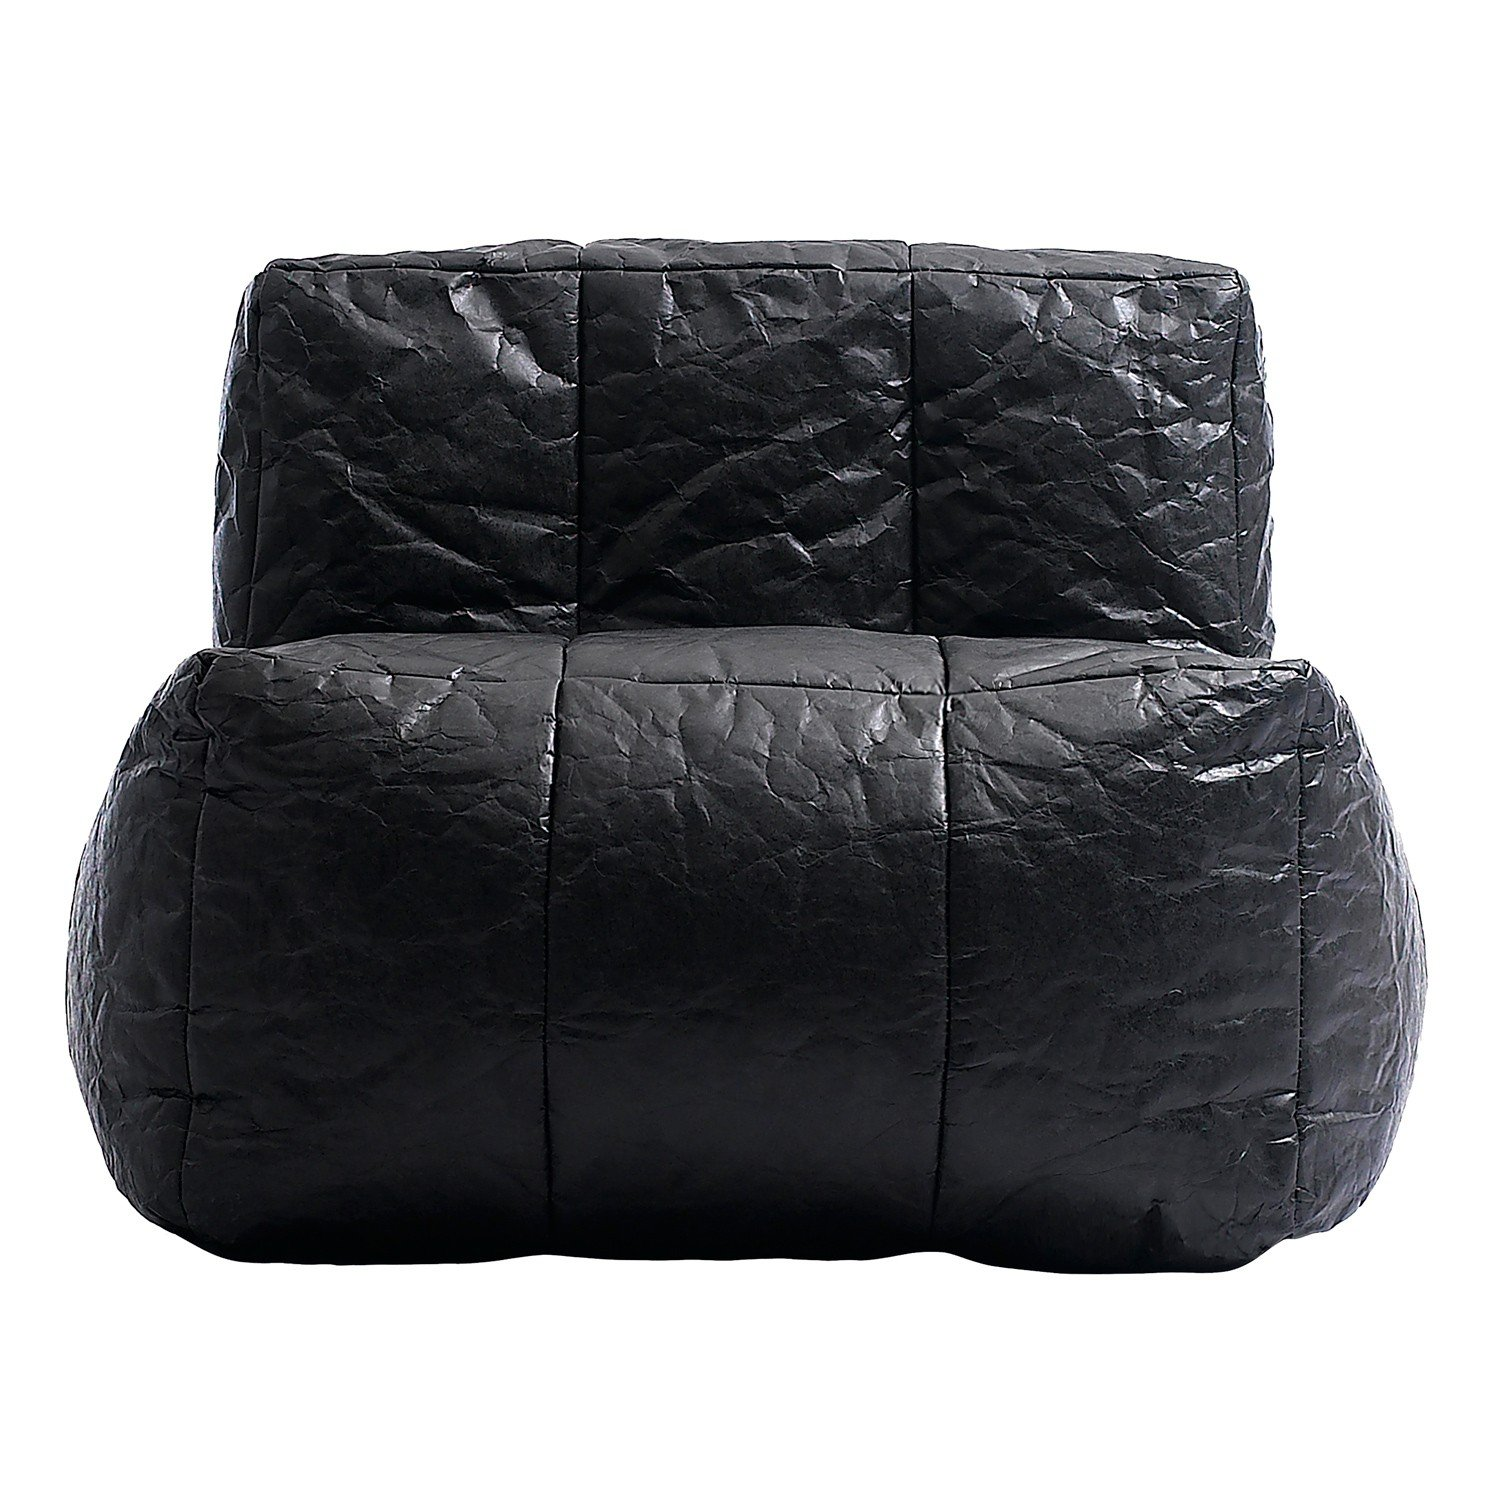 pouf fluffy sklum france. Black Bedroom Furniture Sets. Home Design Ideas